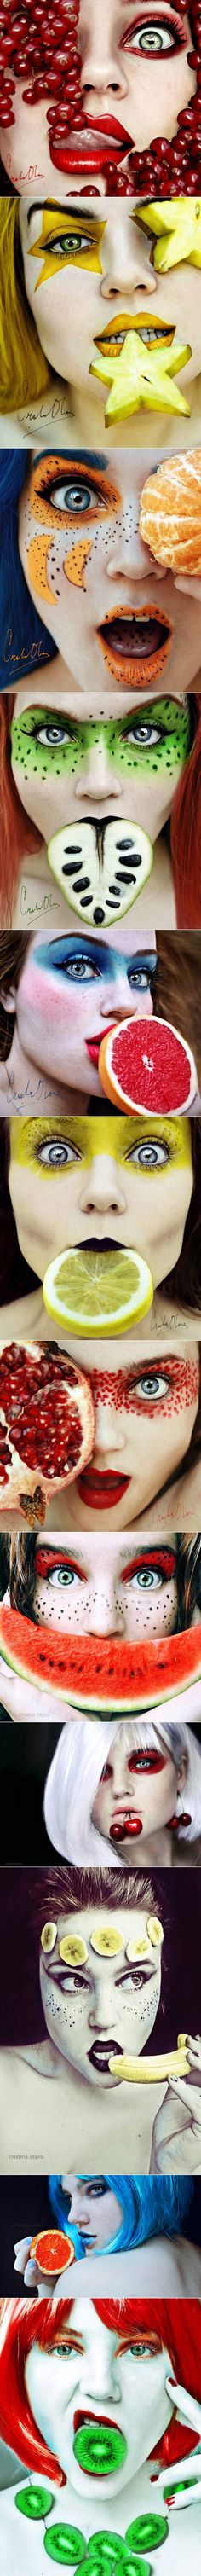 Tutti Frutti Self Portraits By Cristina Otero - #art #photography #portrait - www.boostinspirat...